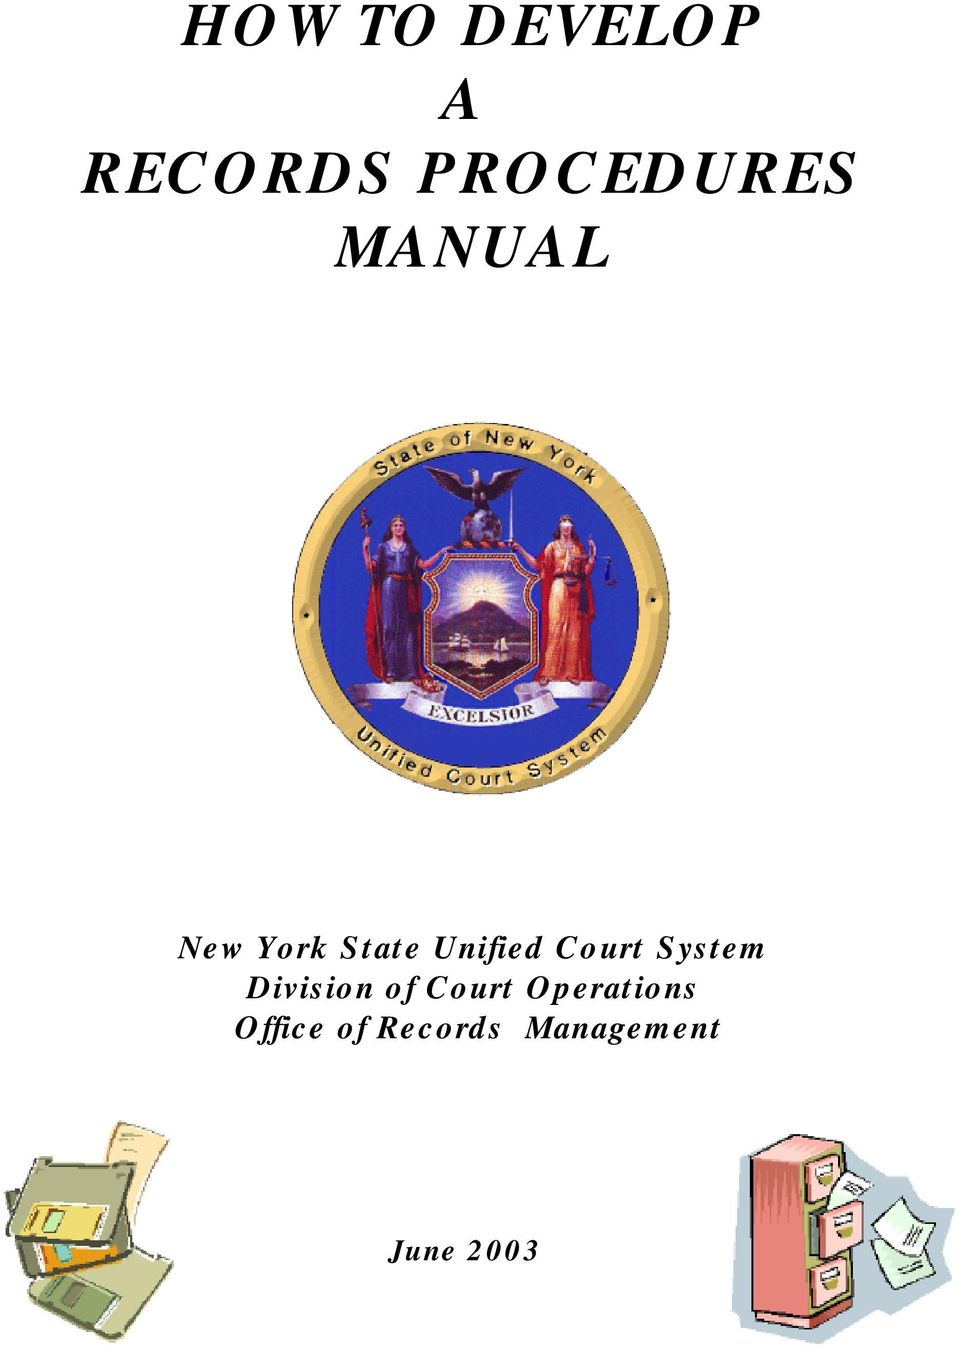 System Division of Court Operations